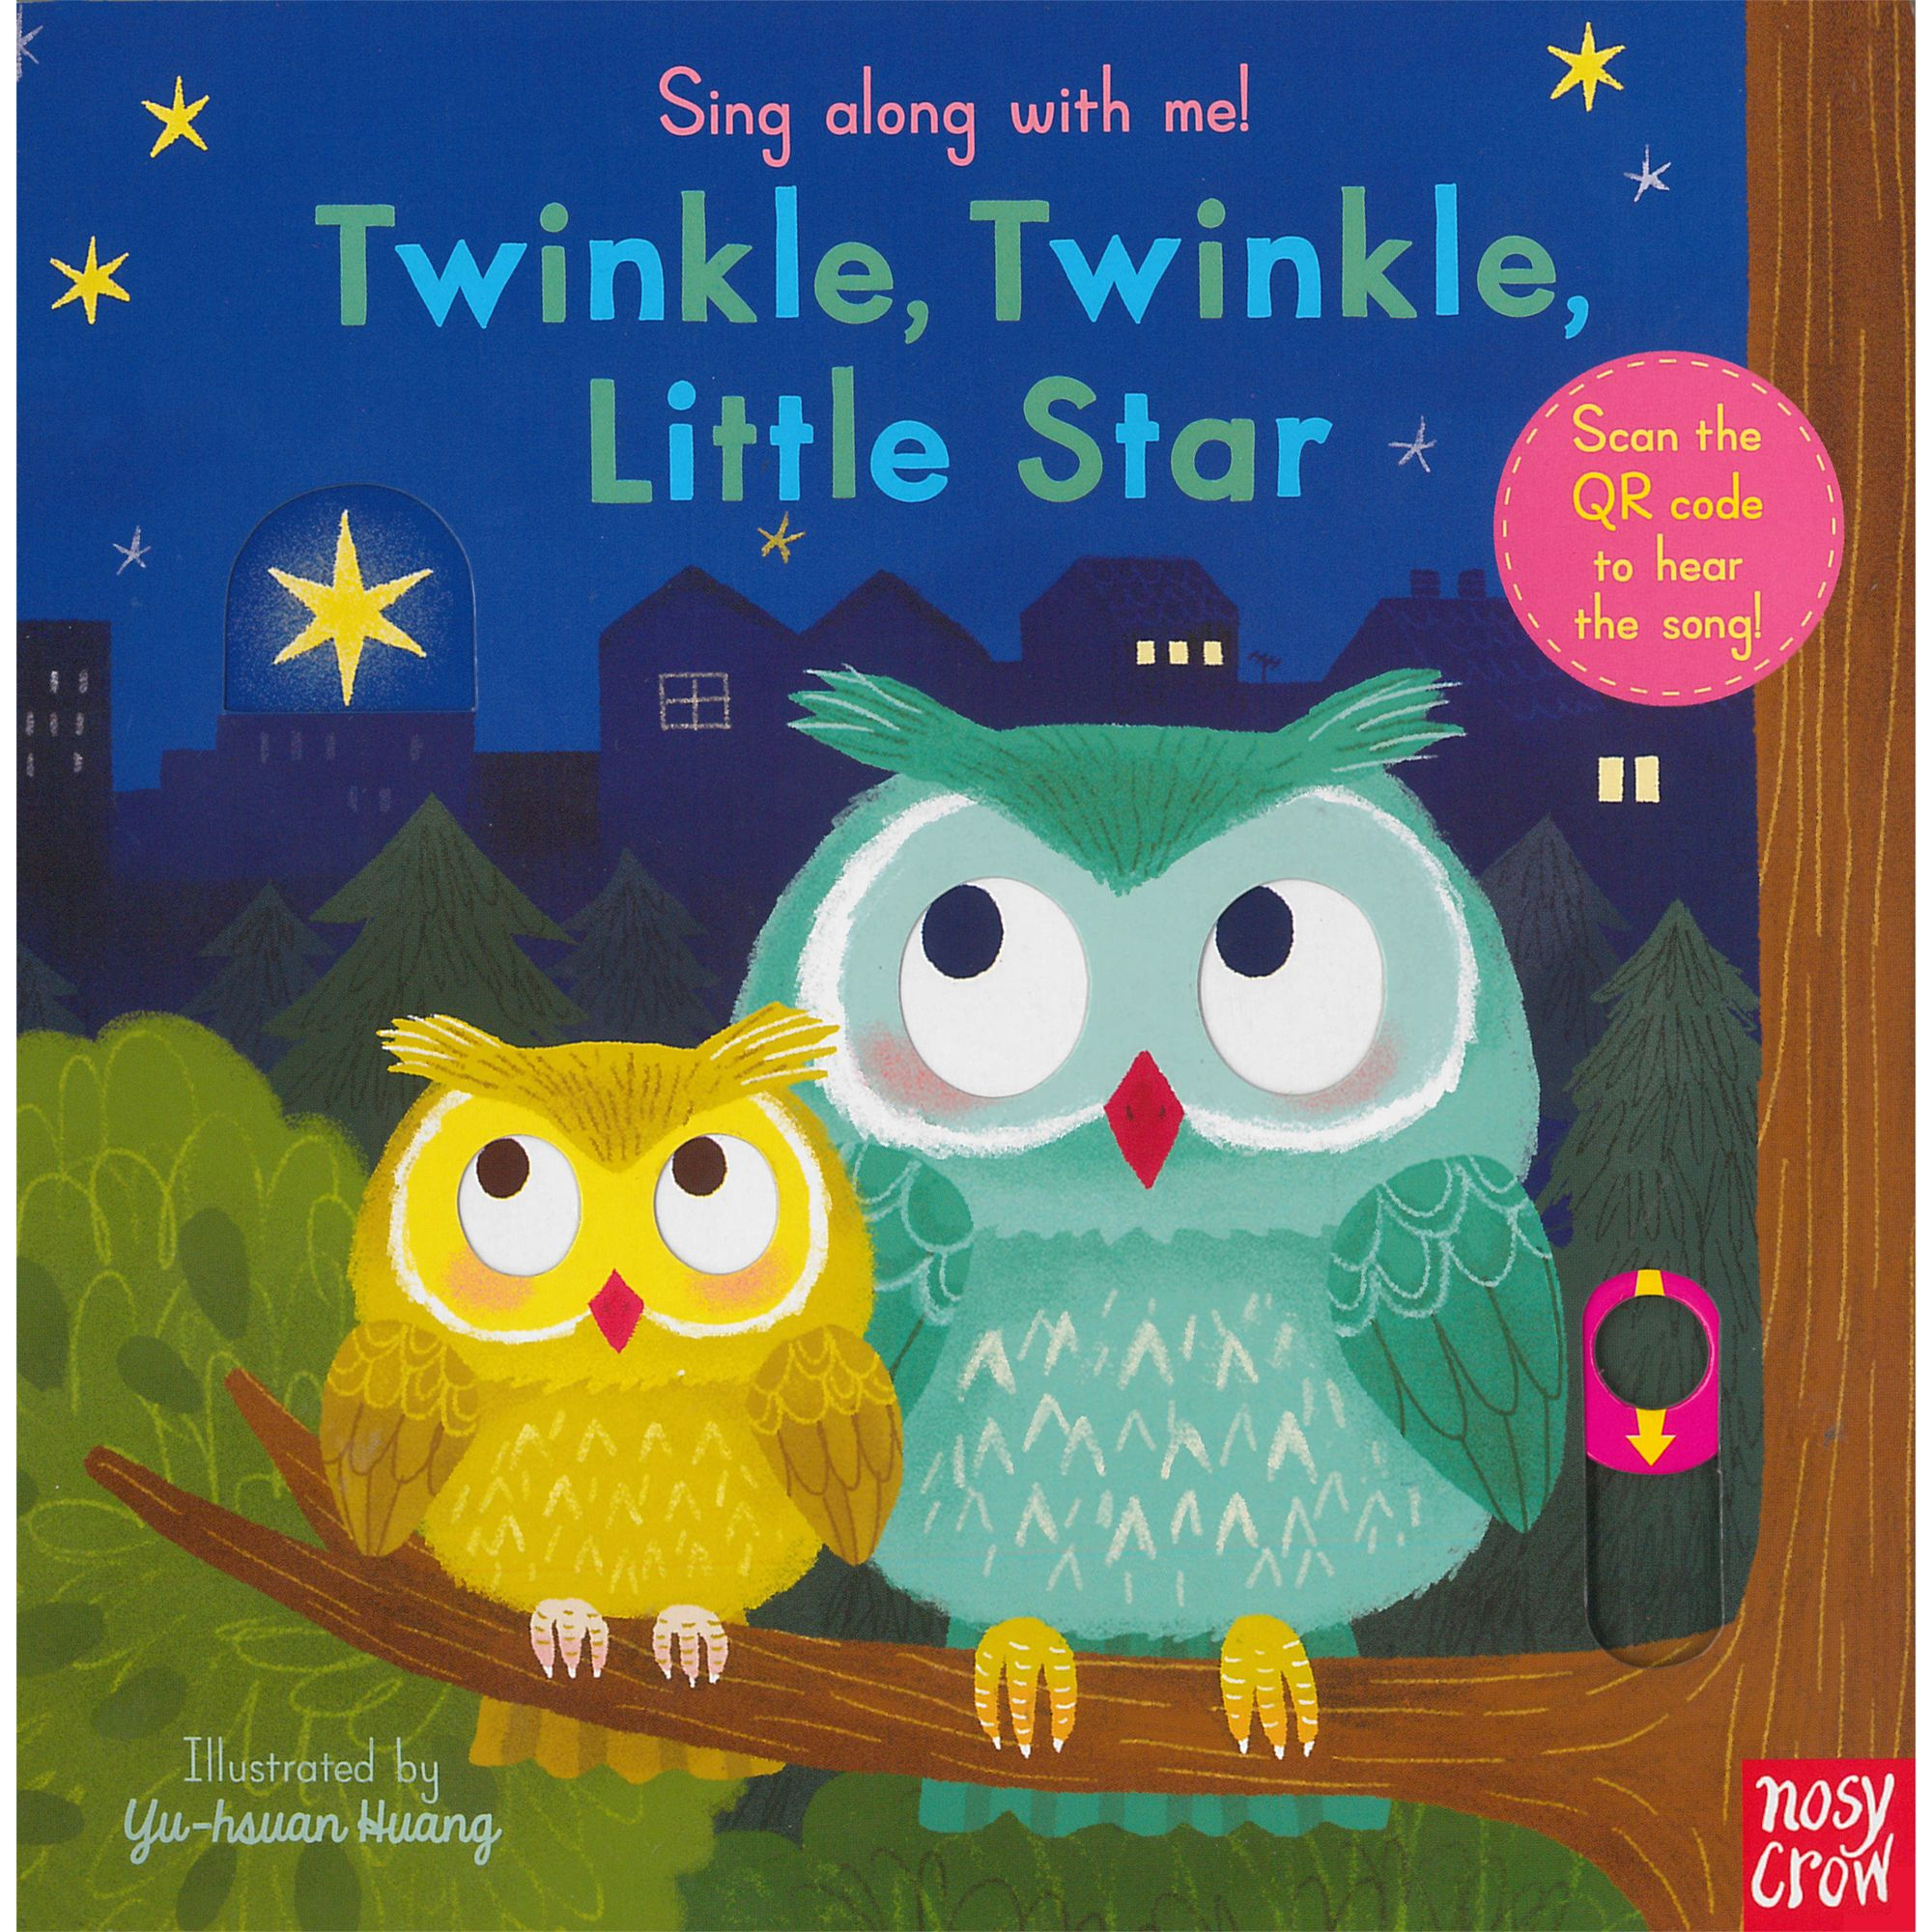 Nosy Crow Sing Along With Me! Twinkle, Twinkle, Little Star Book